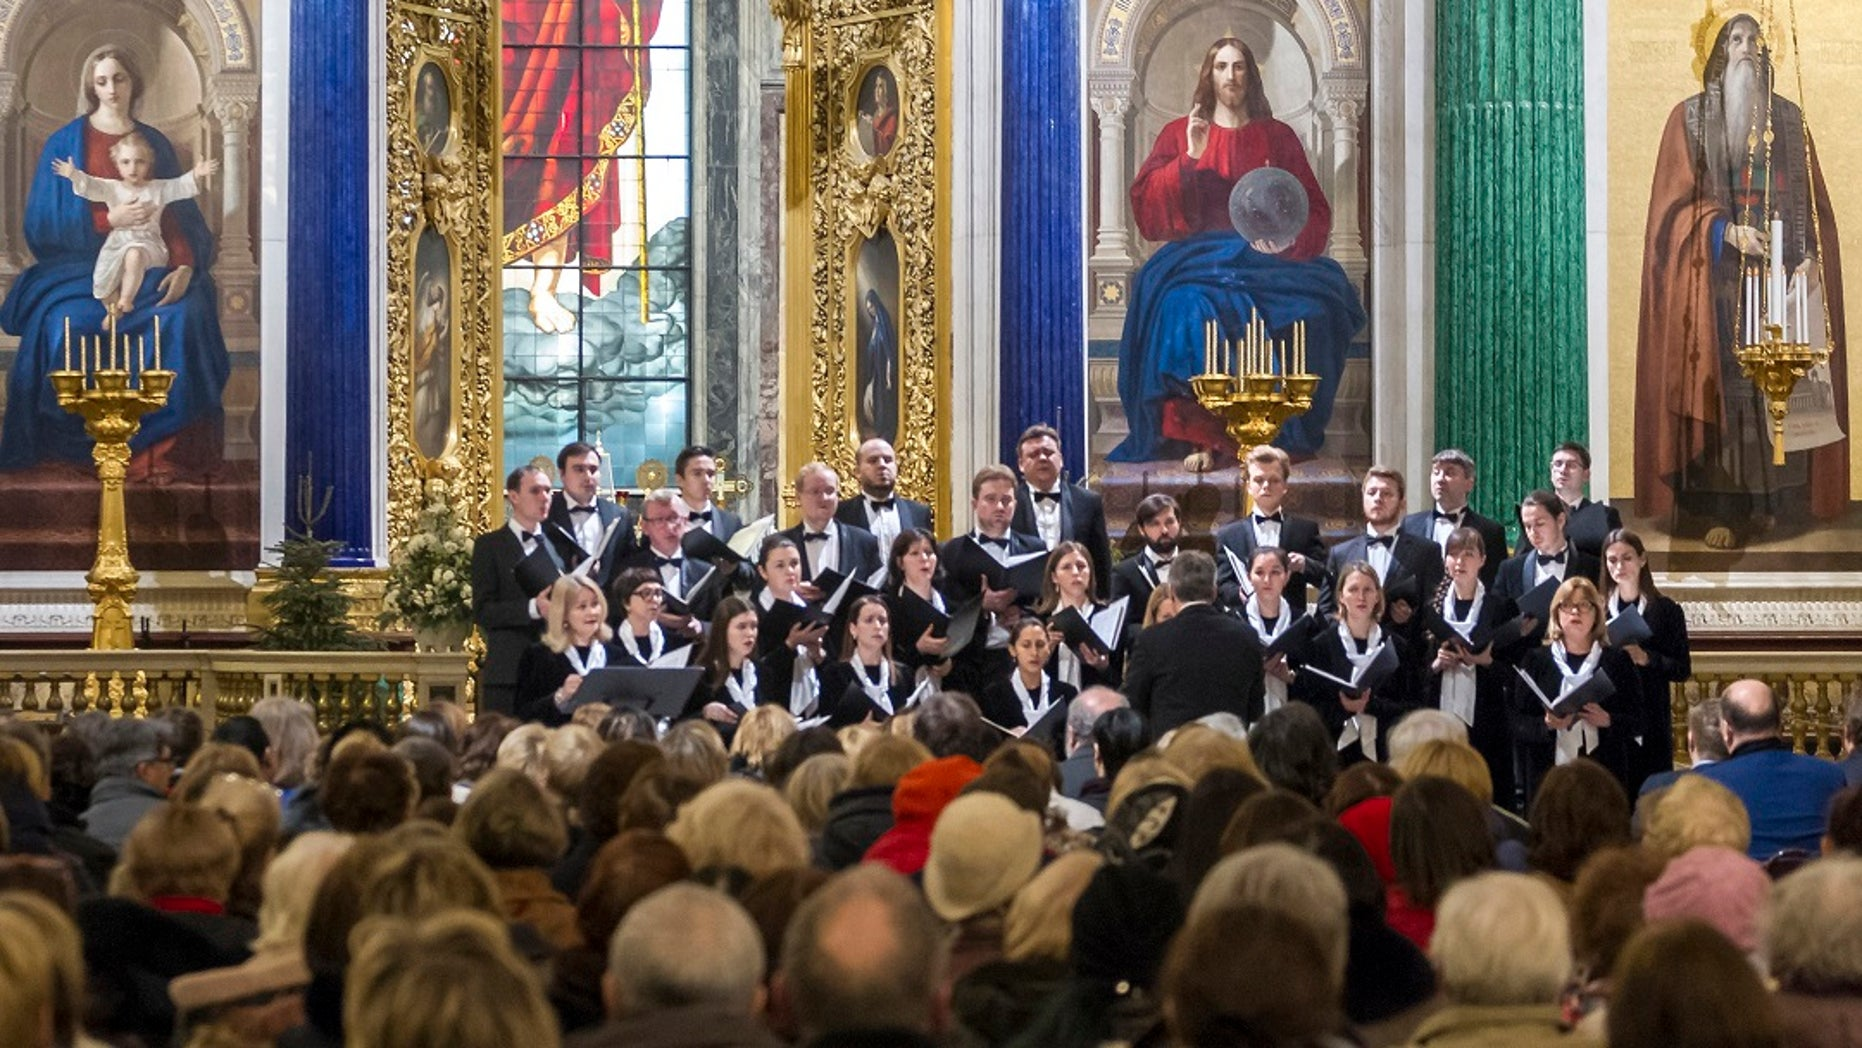 FILE 2018: Concert Choir performs at the St. Isaac's Cathedral in St. Petersburg, Russia. A choir in the Russian city of St. Petersburg has drawn criticism for performing a satirical song about firing a missile on the United States from a Soviet nuclear submarine. (Roman Pimenov, Interpress photo agency via AP)